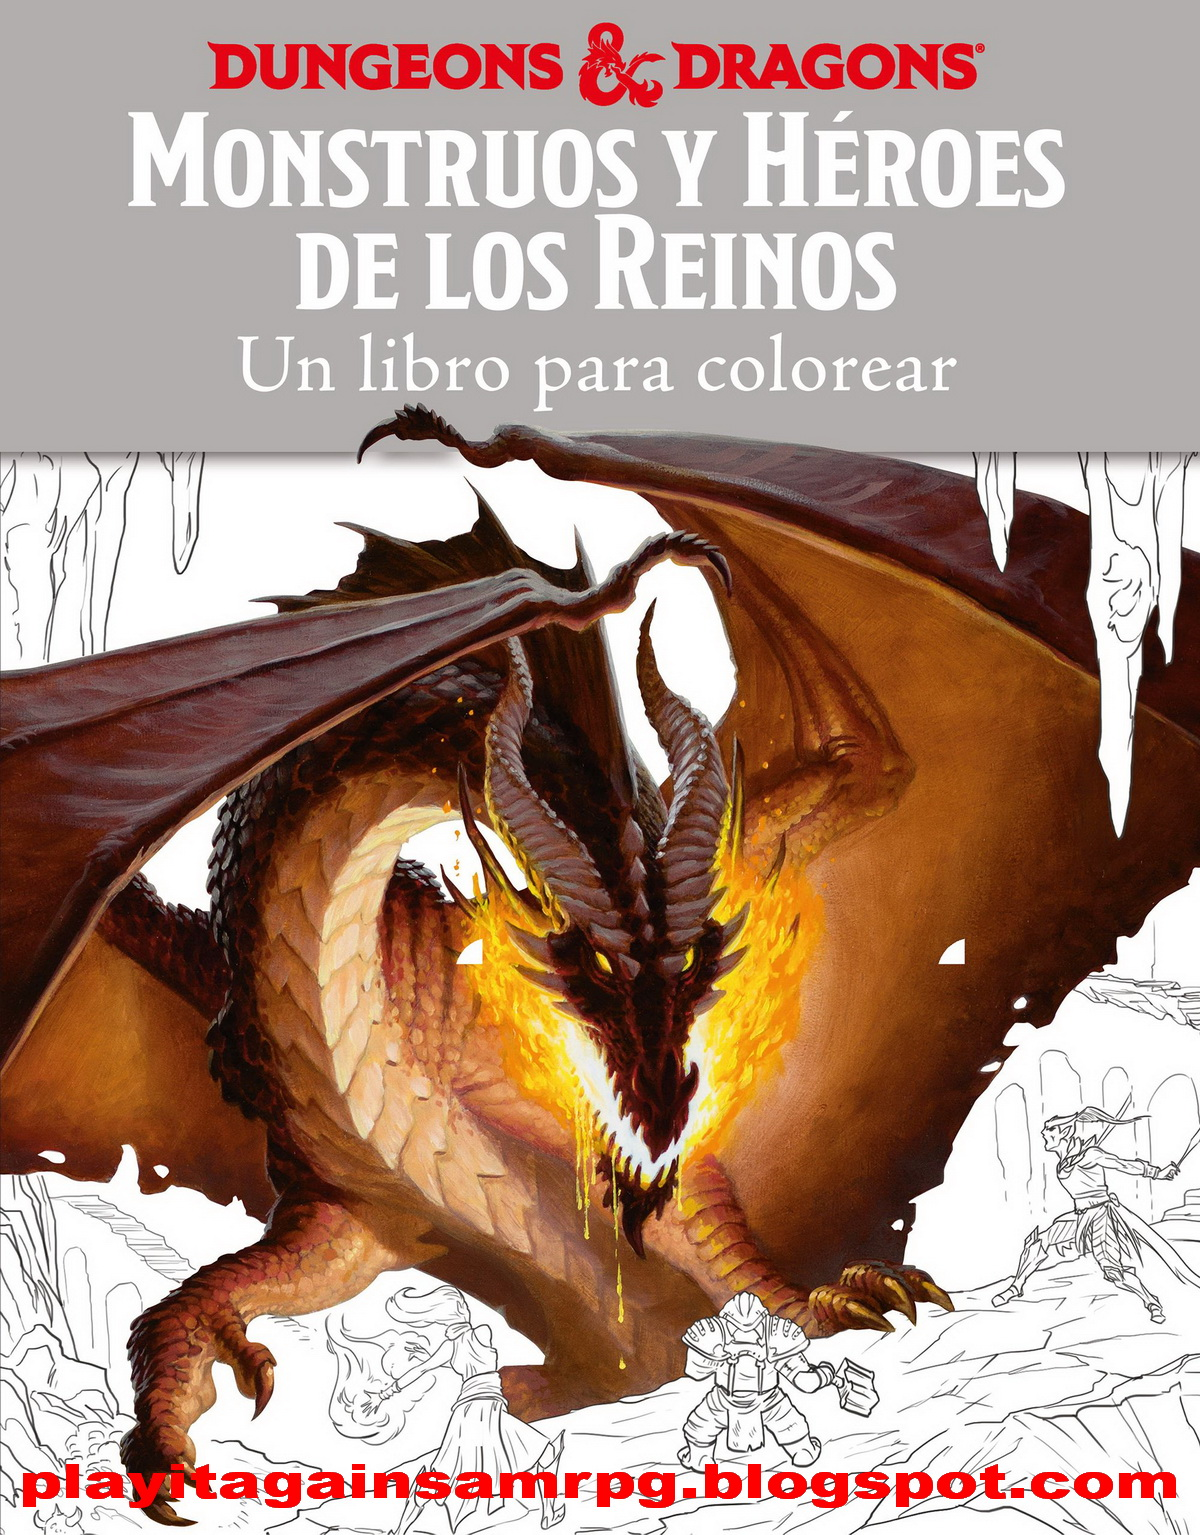 Cinco Reinos Libro Play It Again Sam Pinta Y Colorea Con Dungeons And Dragons